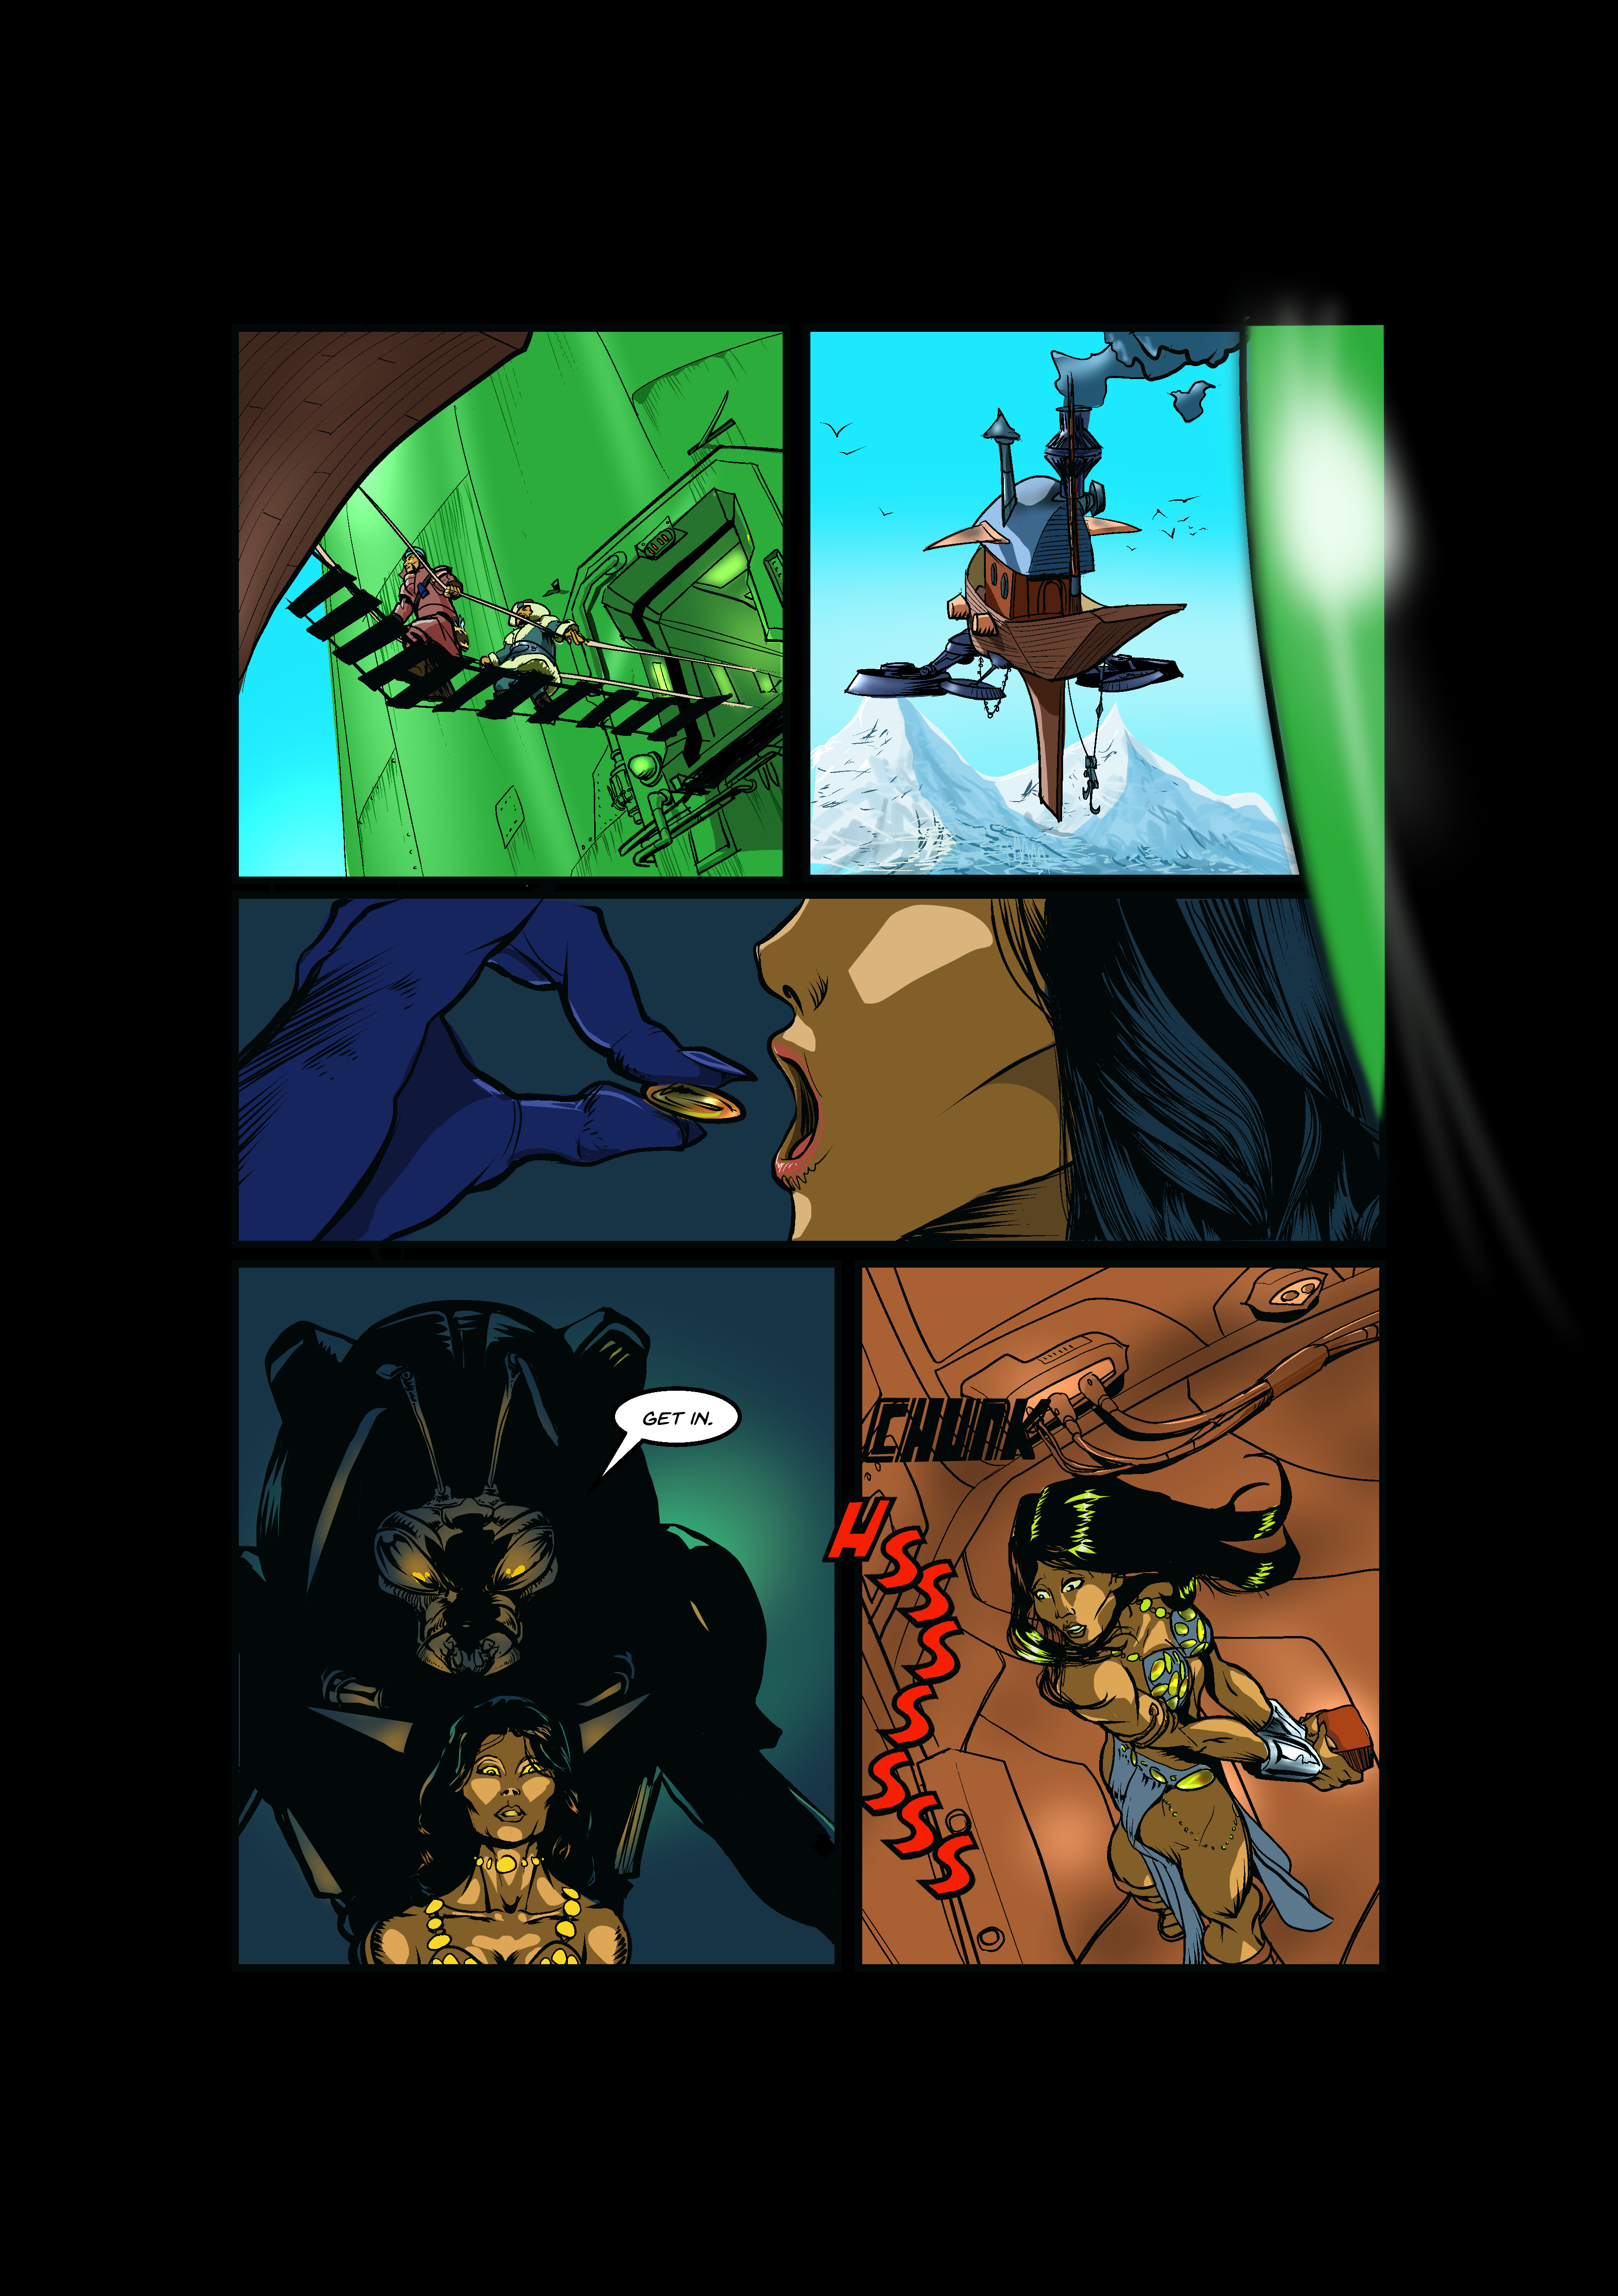 Prince of the Astral Kingdom chapter 2 pg 42